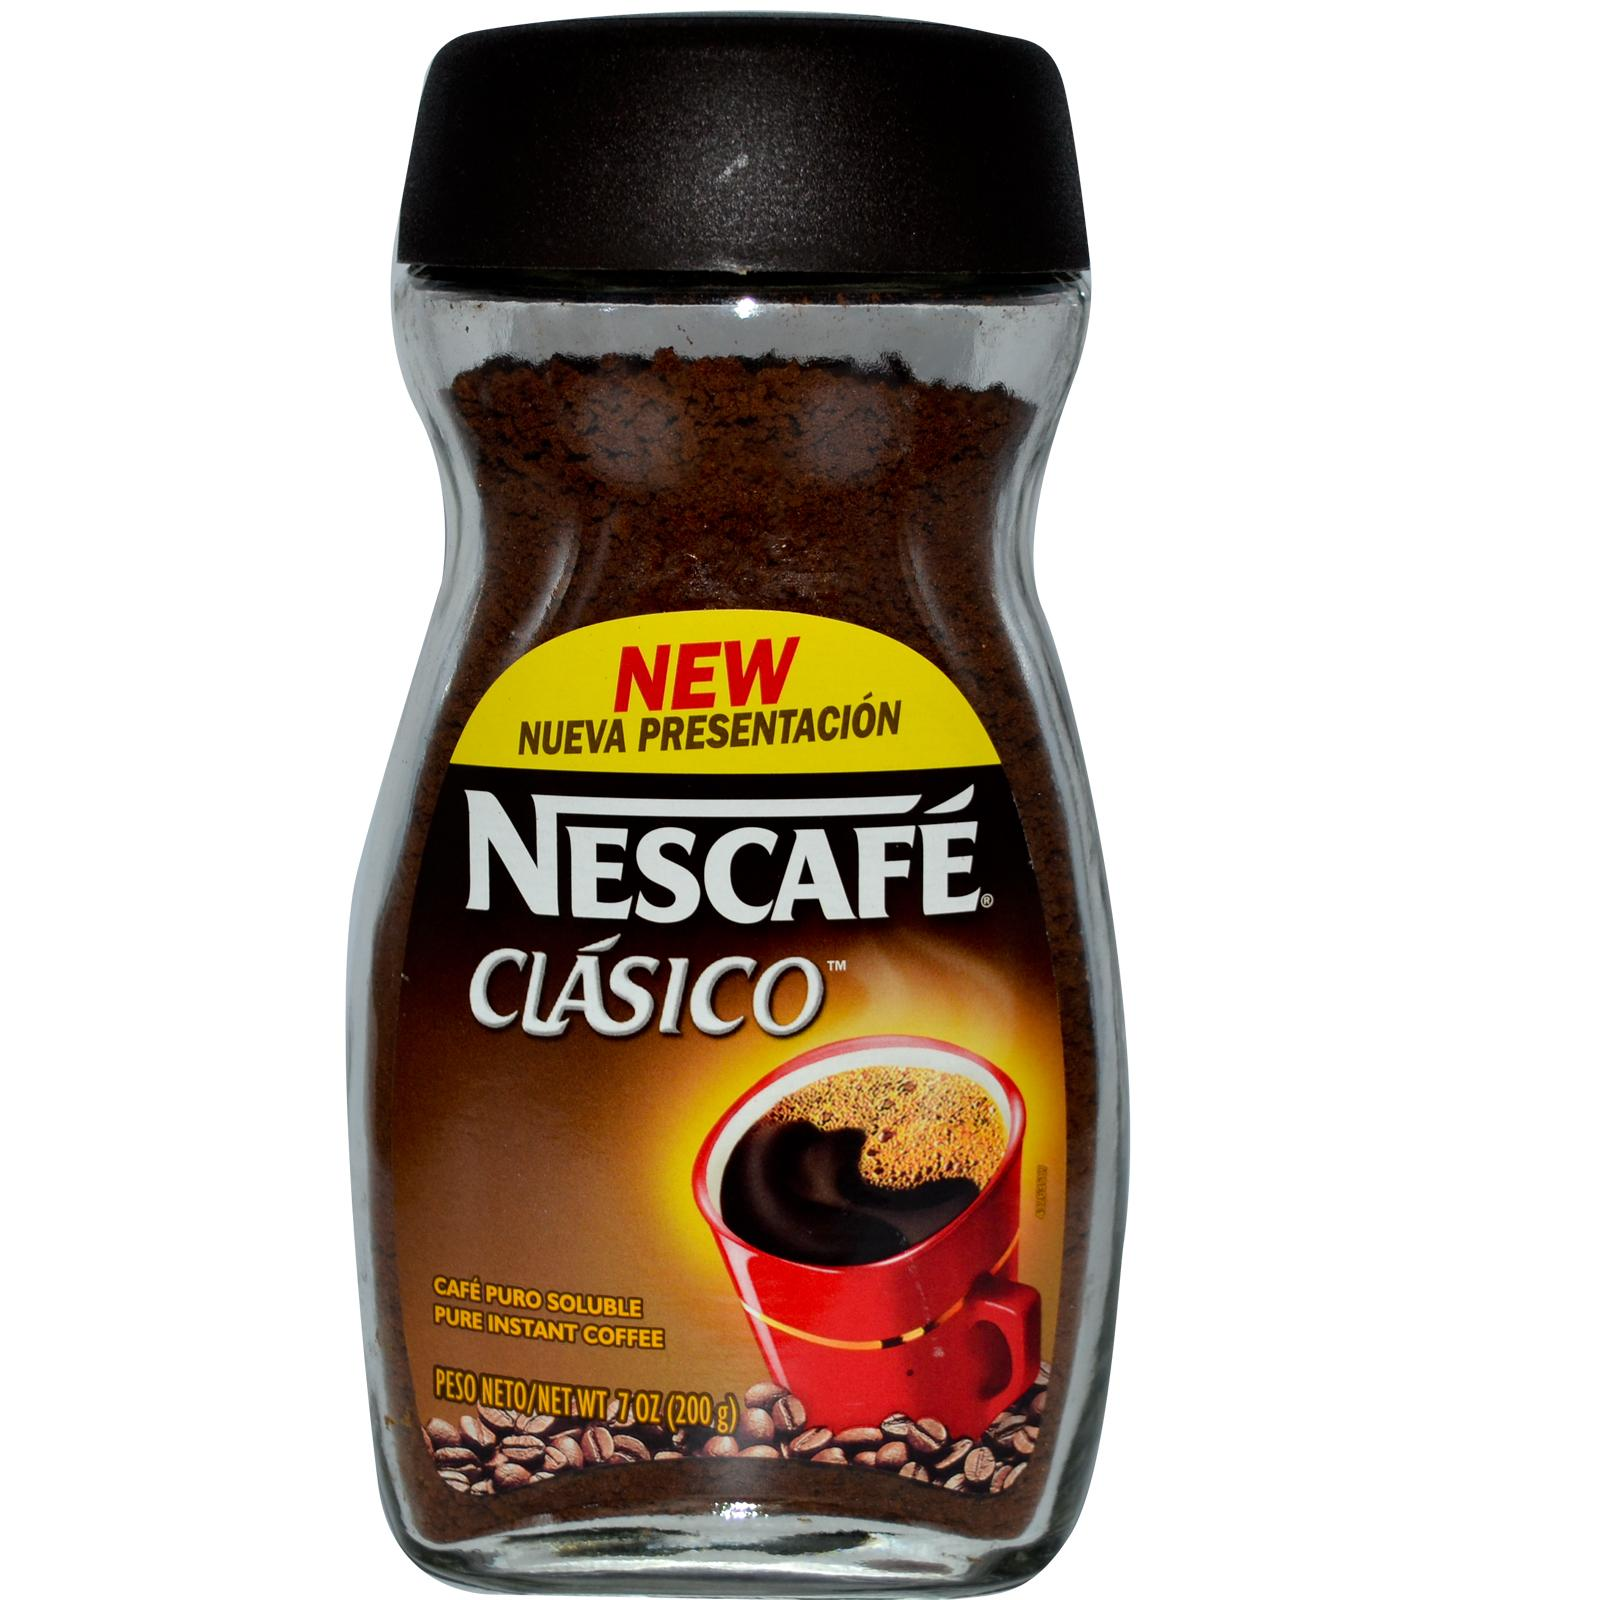 Nescafe Instant Coffee 1 50 Off Printable Coupon